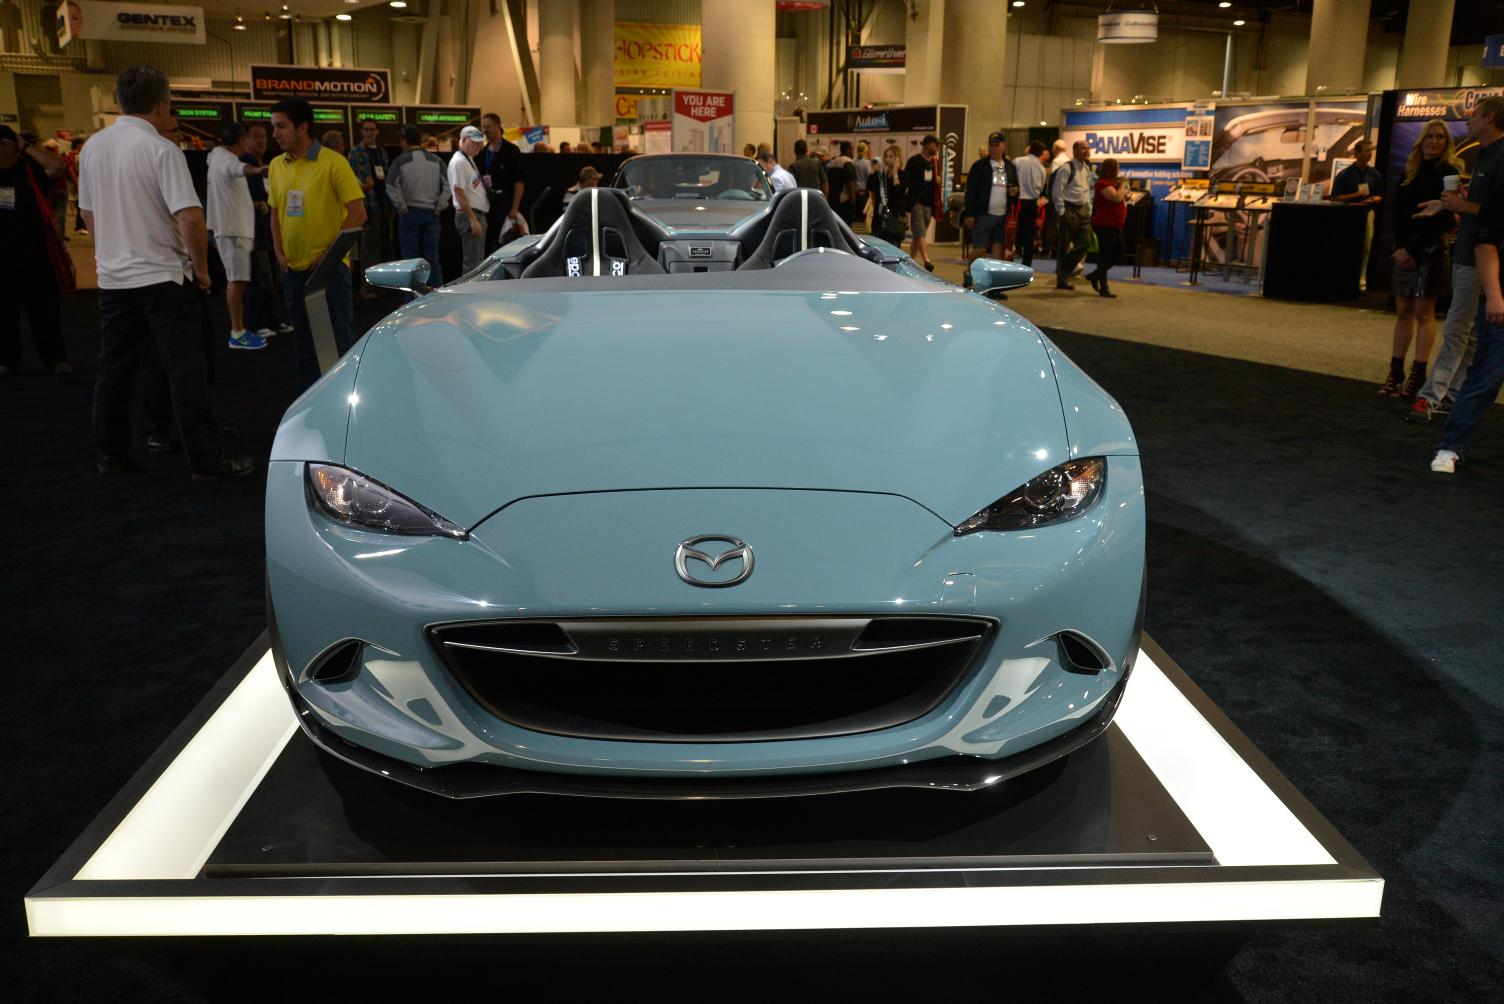 https://s1.cdn.autoevolution.com/images/news/gallery/2016-mazda-mx-5-speedster-and-spyder-concepts-stun-sema-live-photos_2.jpg